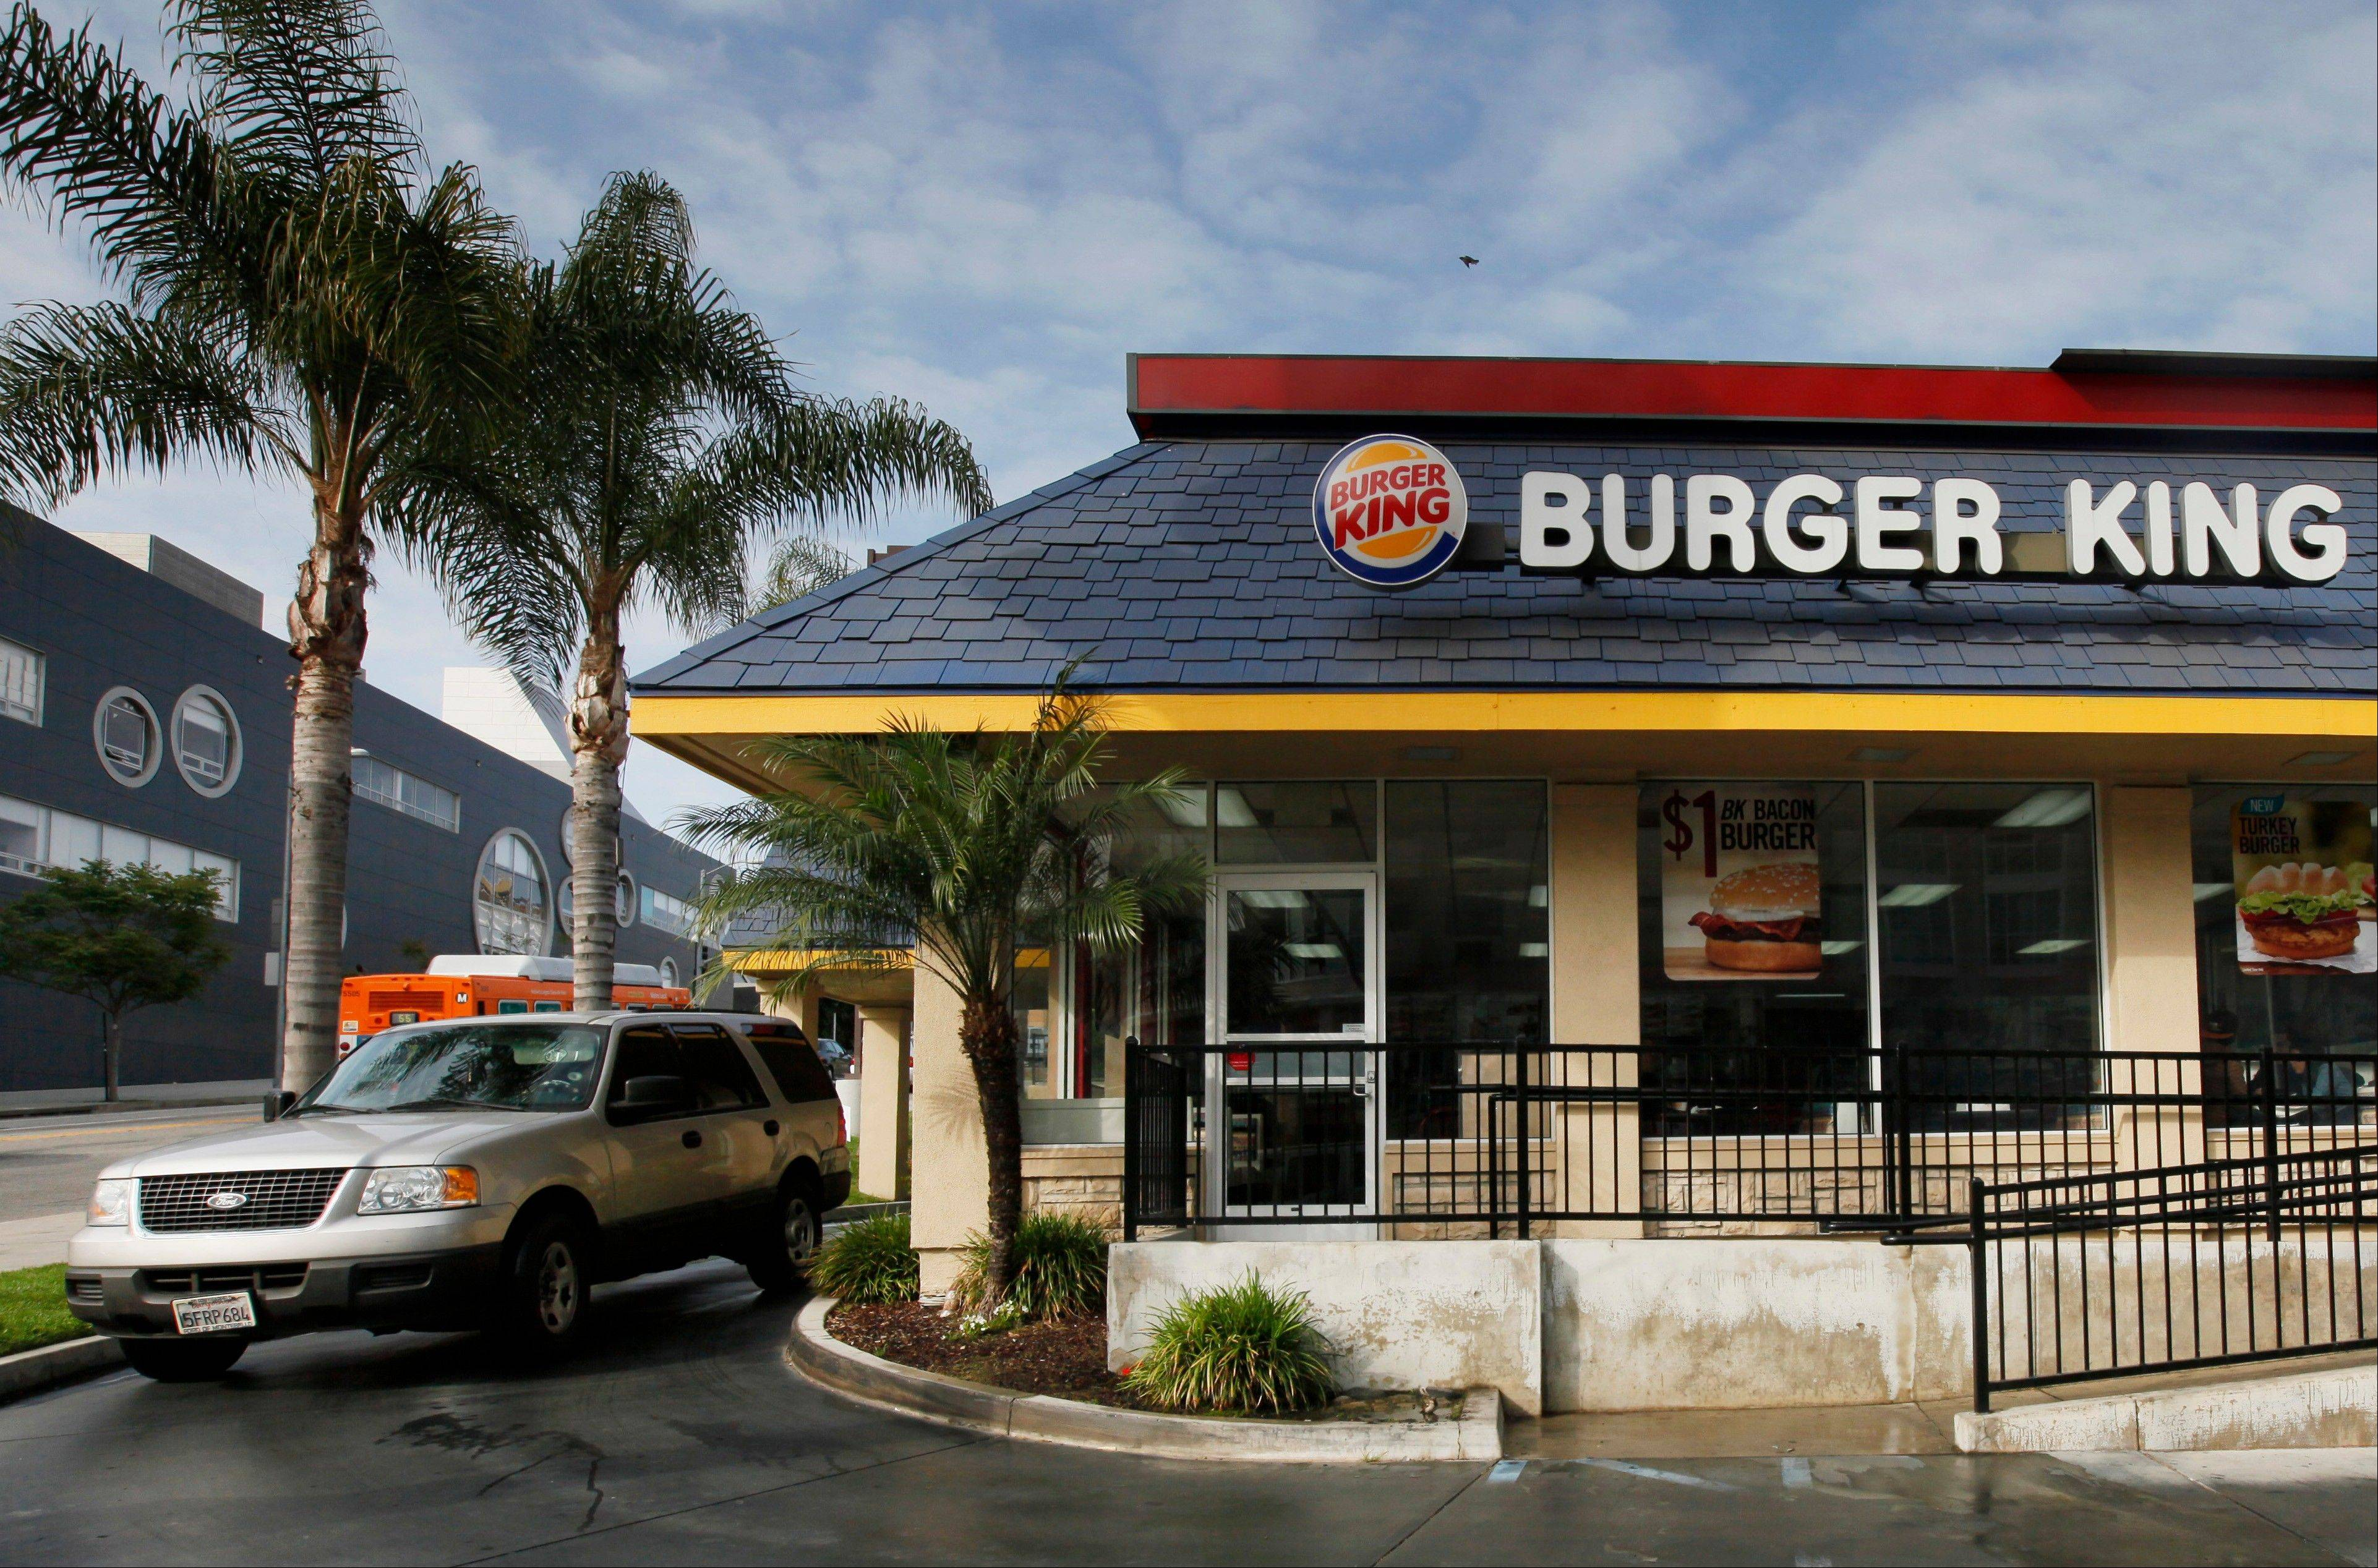 Burger King�s first-quarter earnings more than doubled even though revenue fell, as the fast-food chain trimmed several restaurant-related expenses.